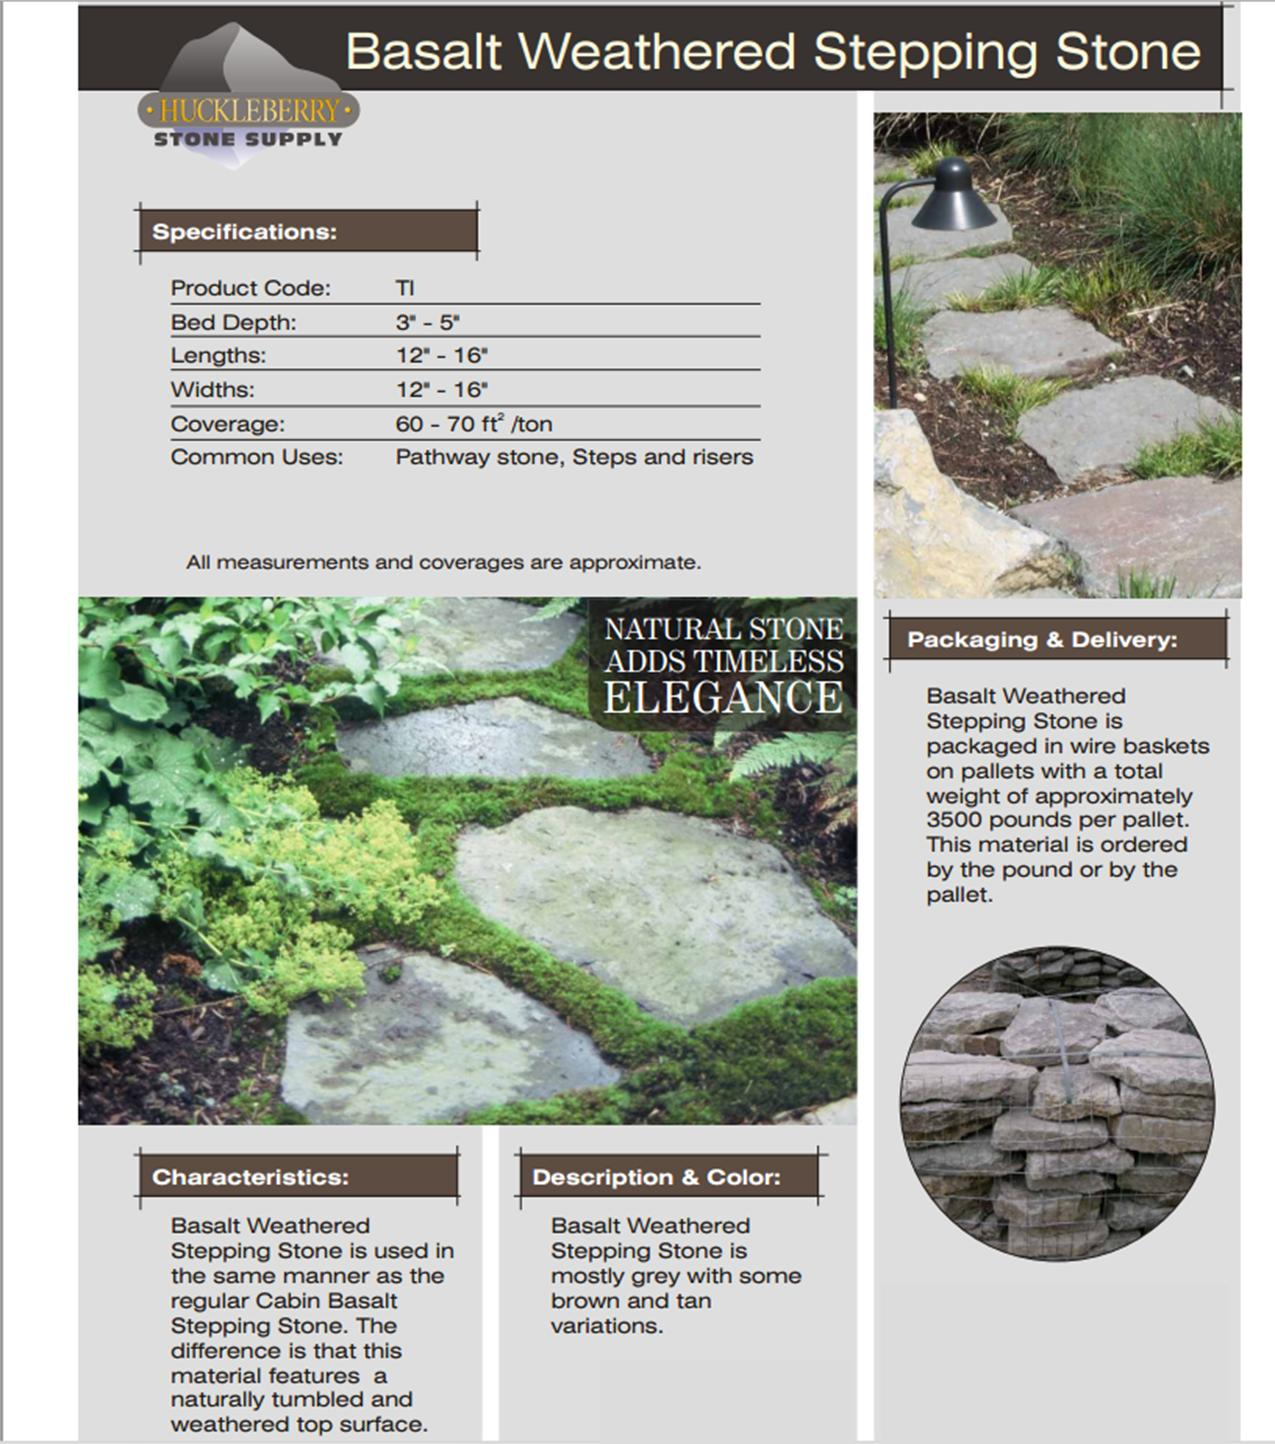 Huckleberry Weathered stone spec sheet